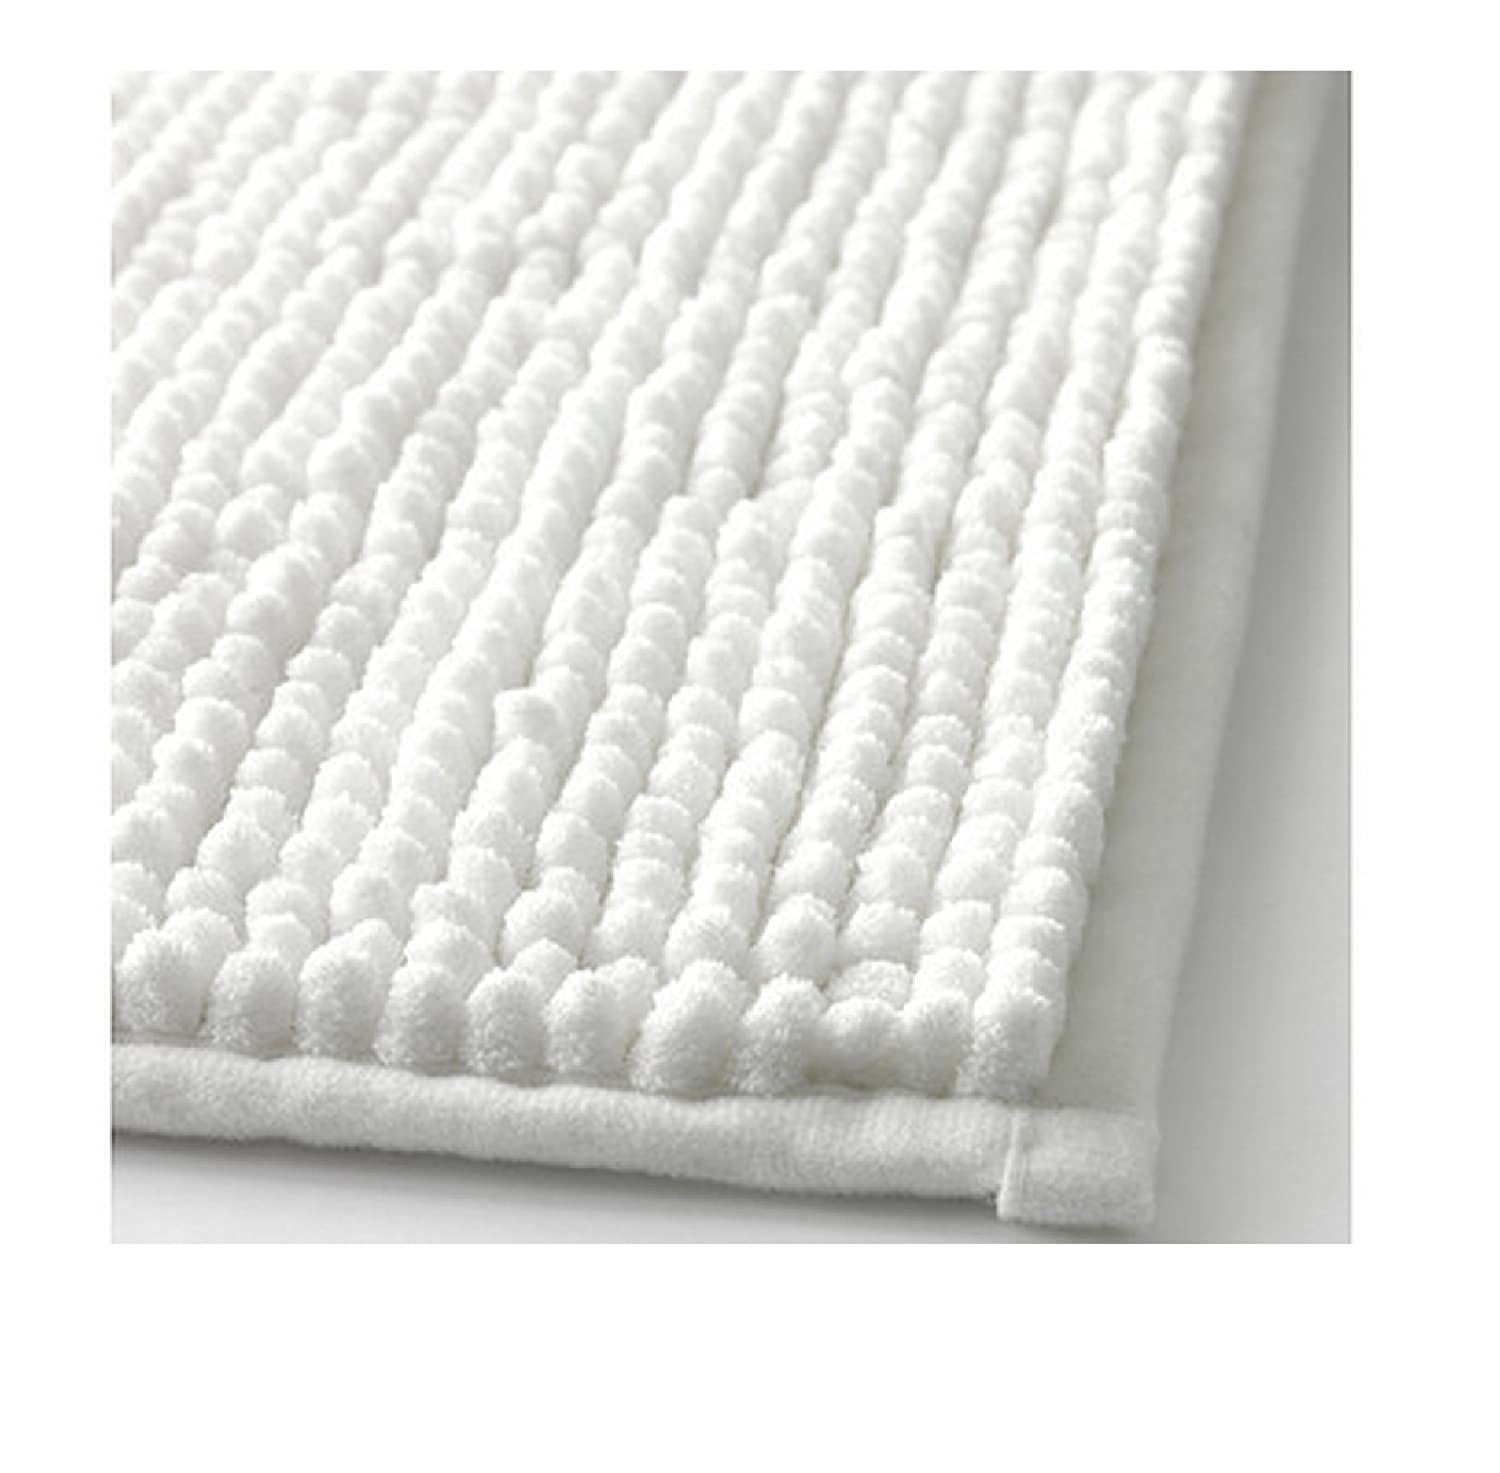 bathmats capacity textiles white soft weight mat gb f bath g rugs towels terry with mats en laren high ikea absorption products